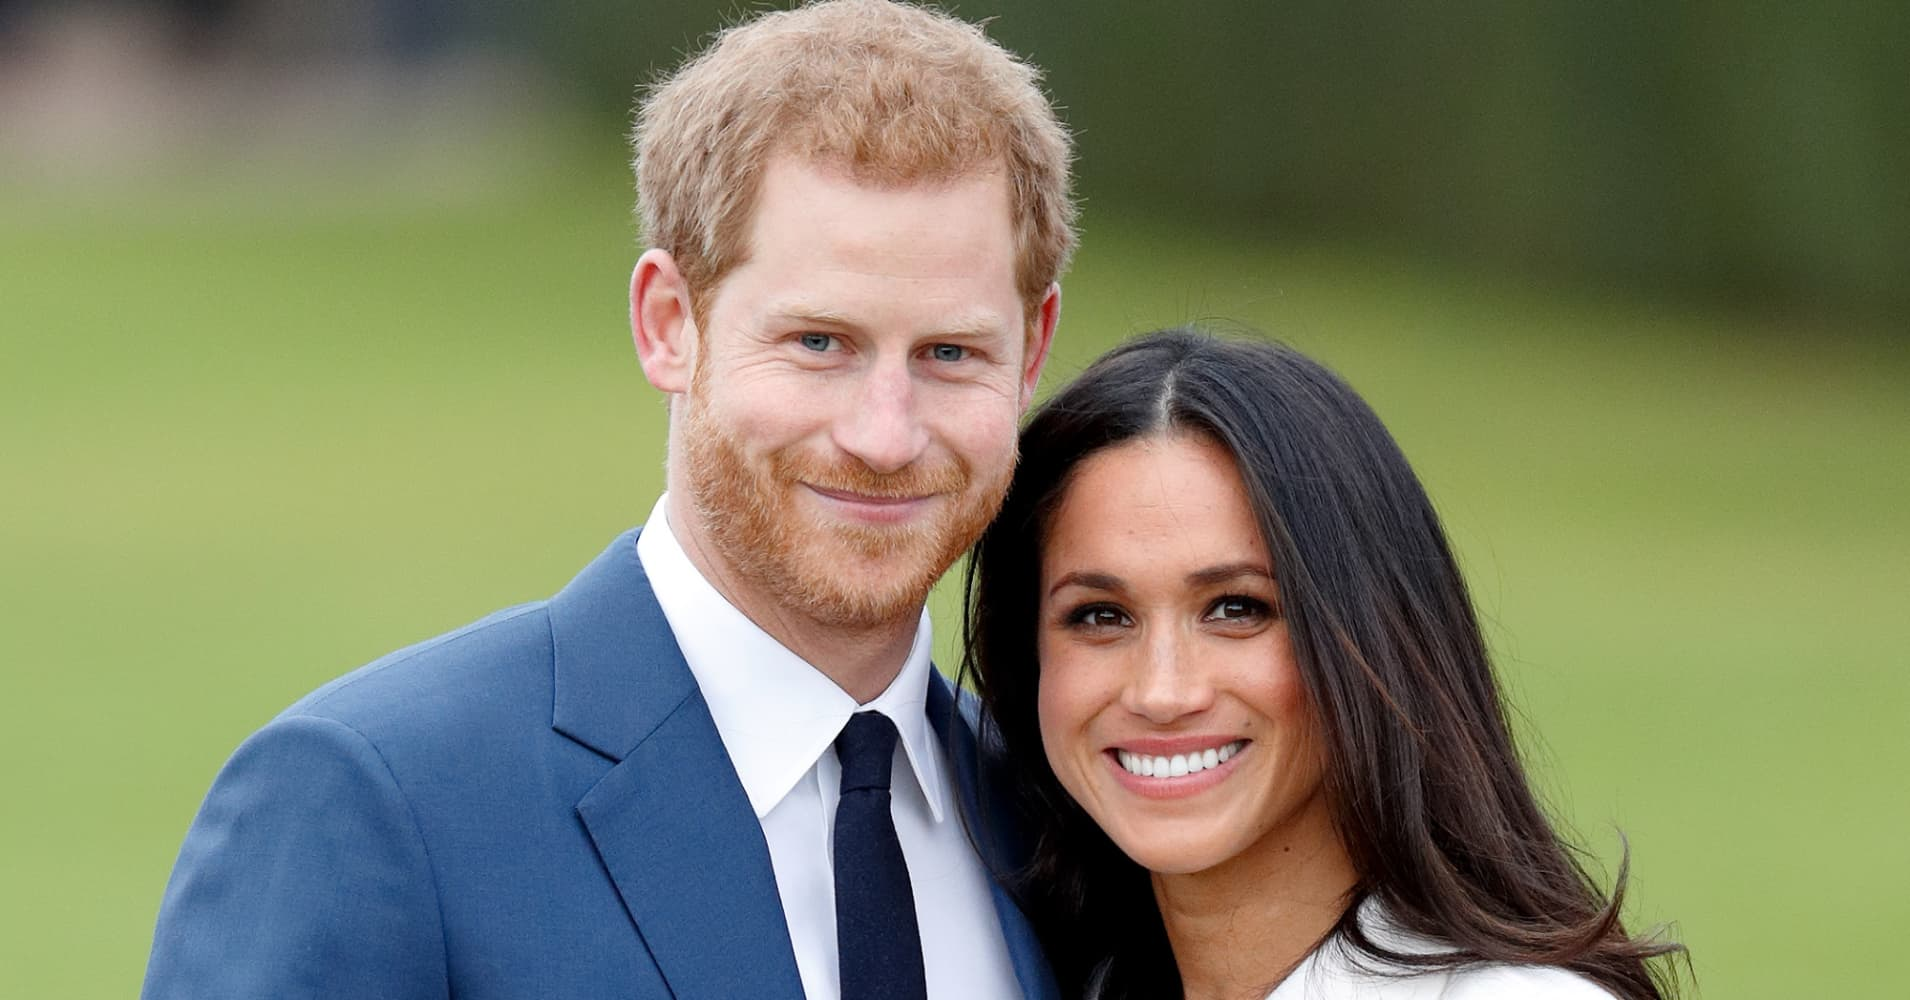 Here's how much the royal wedding is expected to cost